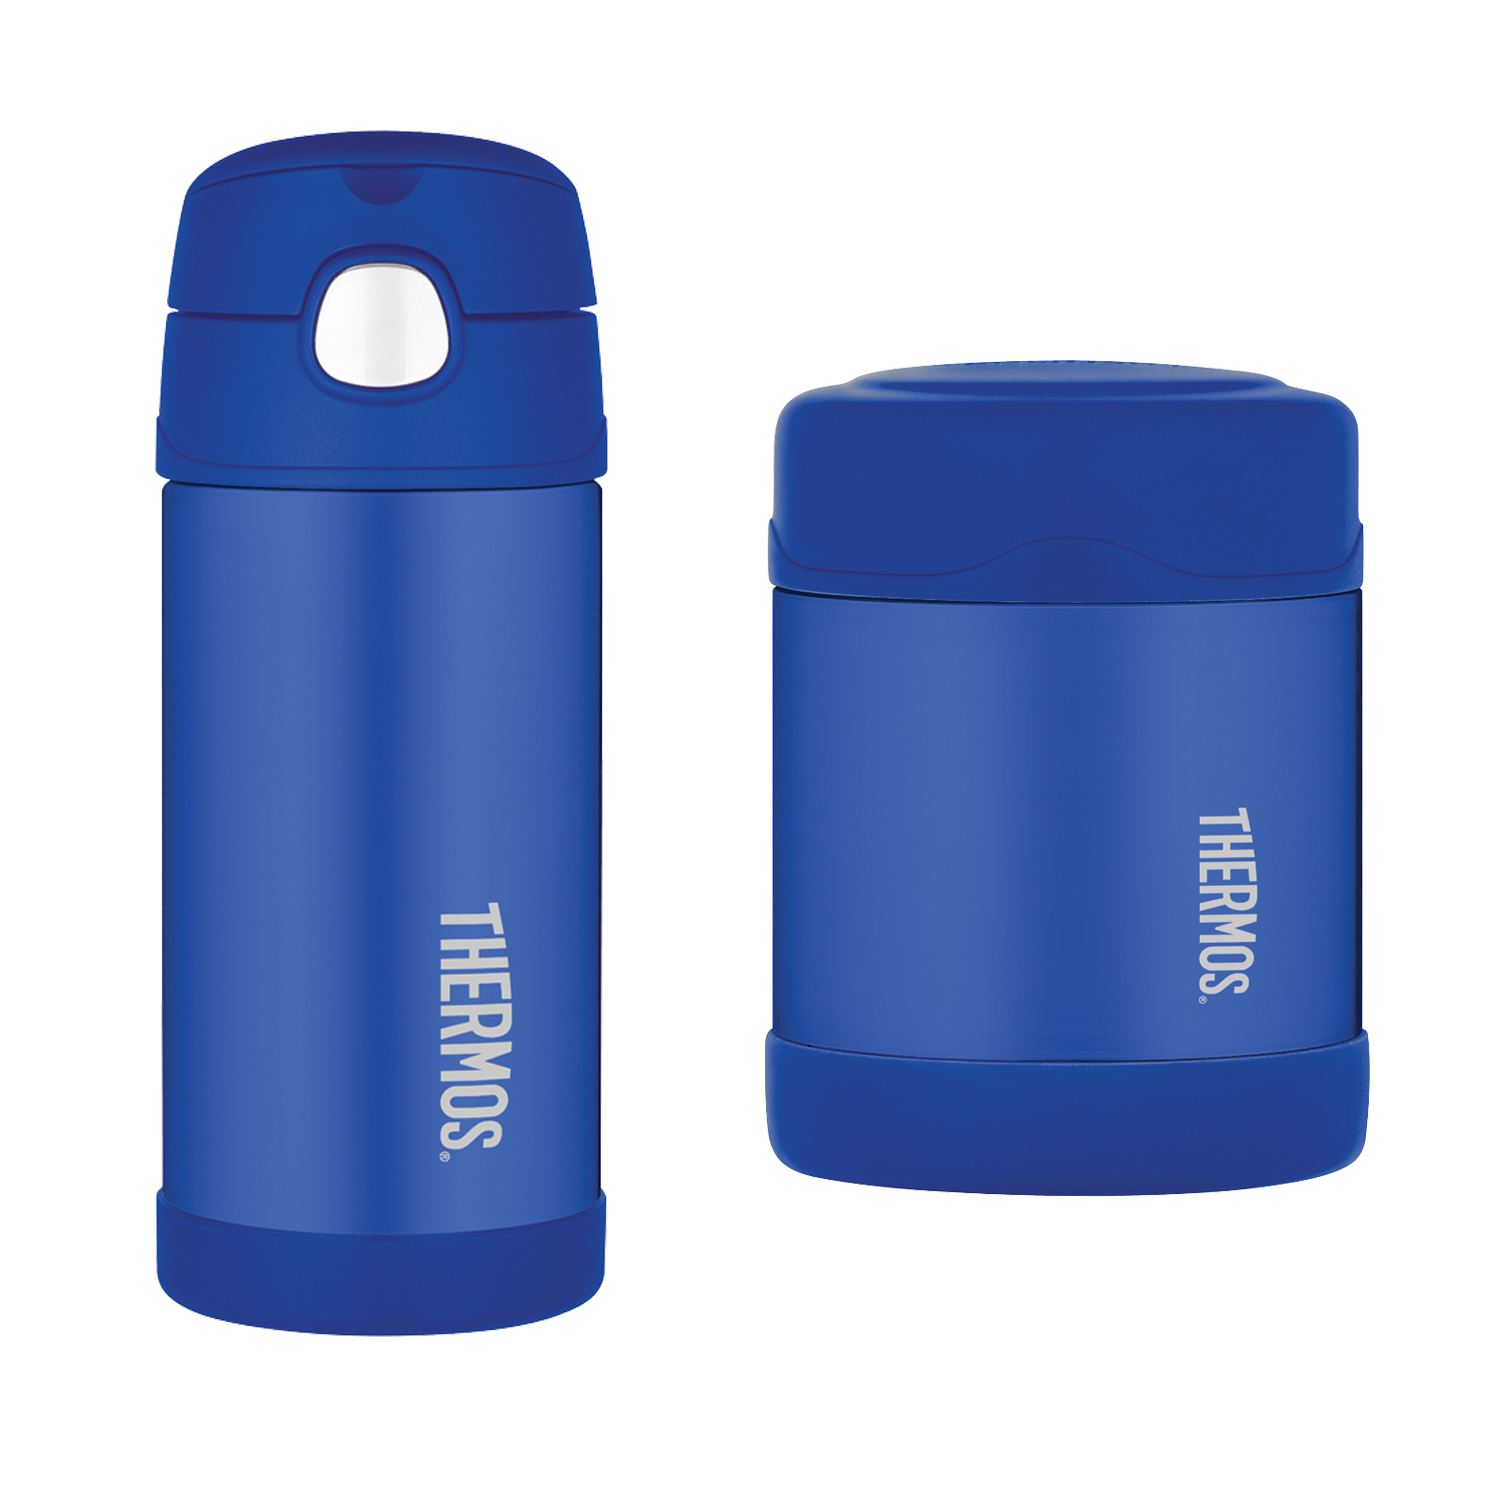 """""""Thermos FUNtainer 12-Ounce Bottle, Blue & Thermos FUNtainer 10-Ounce Food Jar, Blue """""""